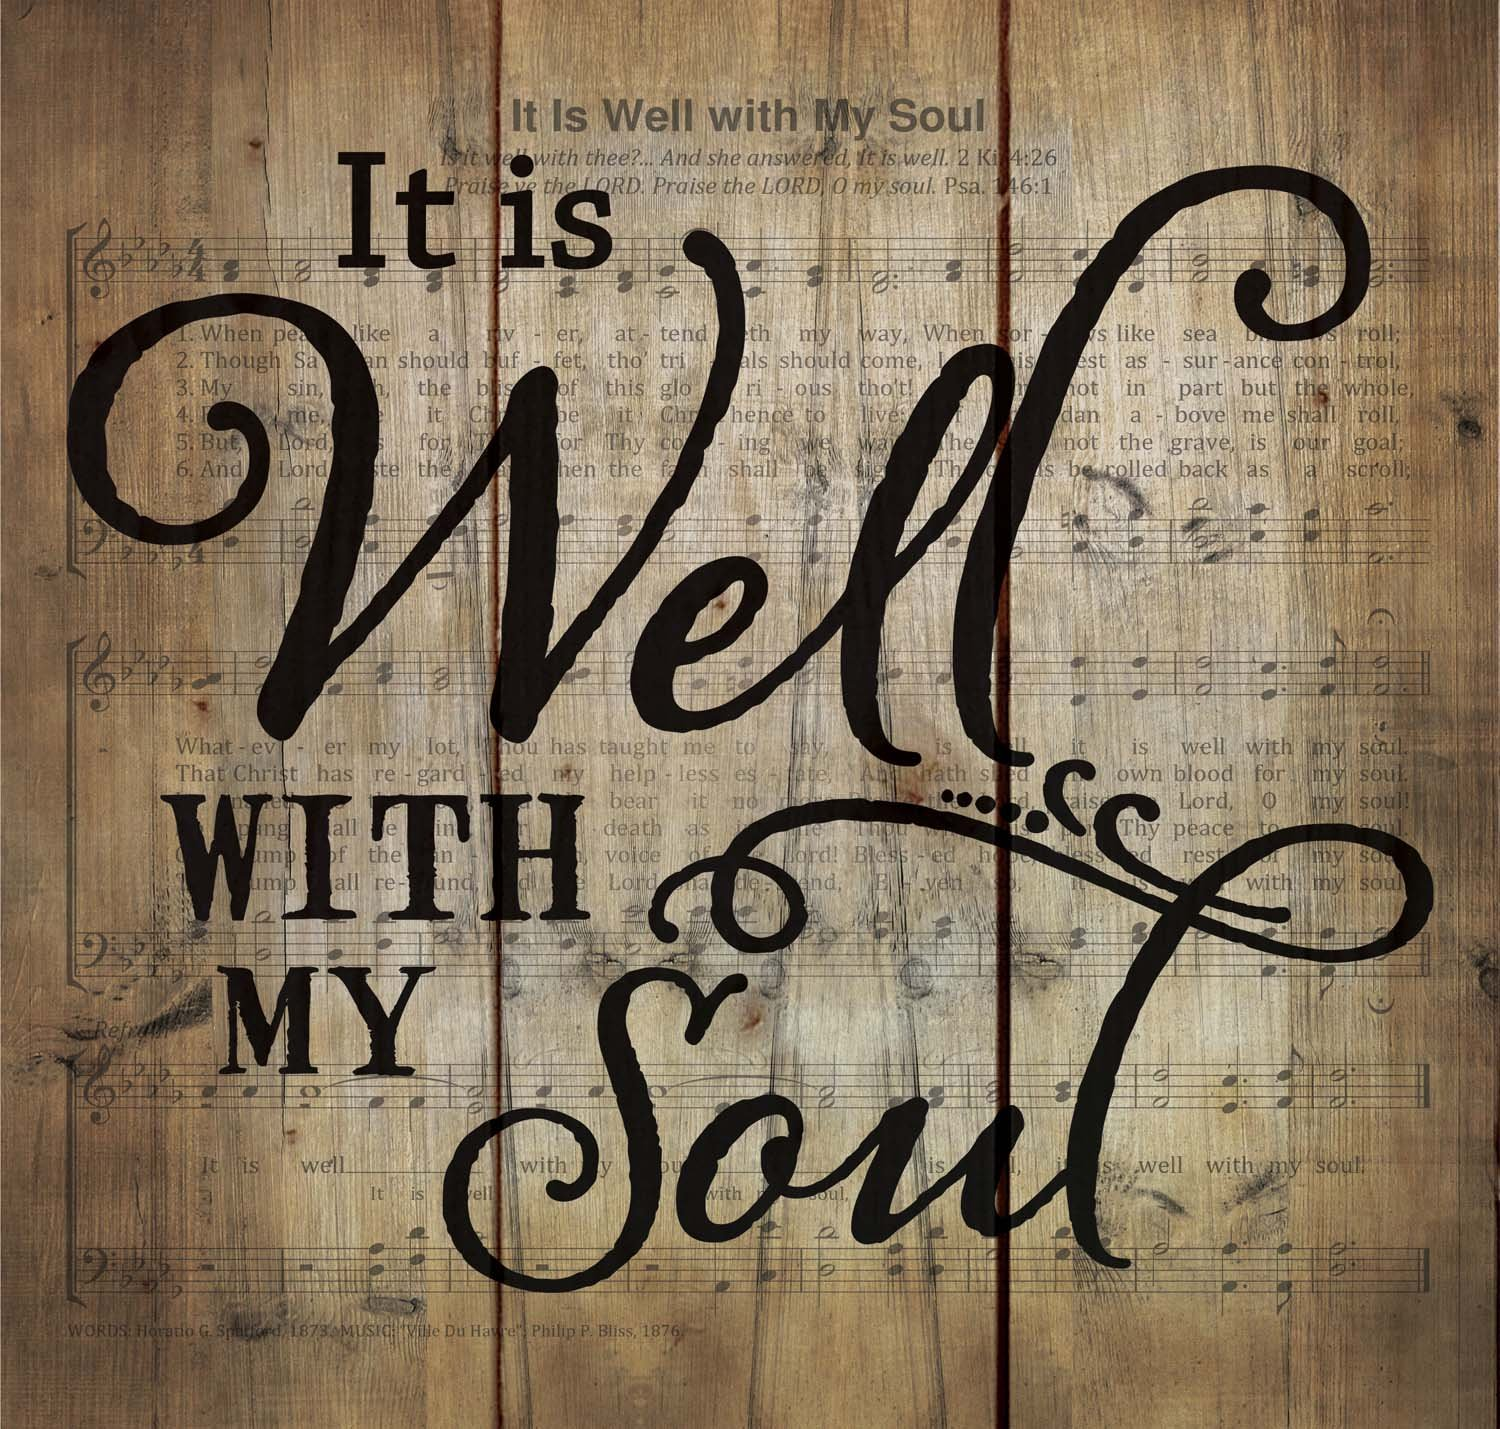 It is Well with My Soul Hymn Sheet Music 10 x 11 Wood Pallet Wall Art Sign Plaque